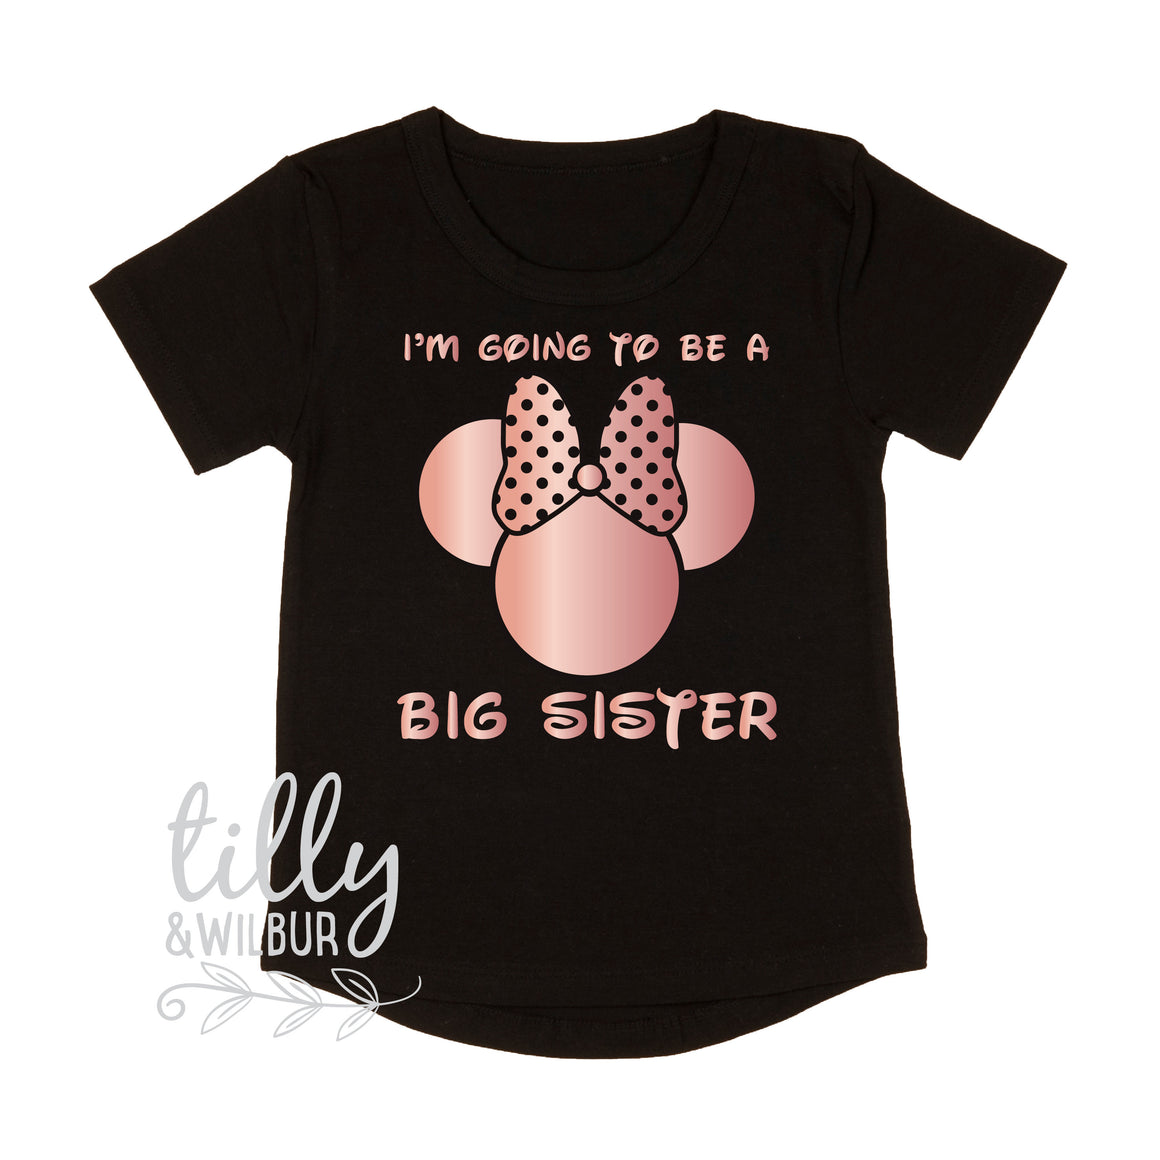 I'm Going To Be A Big Sister T-Shirt for Girls, Minnie Mouse Design, Big Sister Shirt, Pregnancy Announcement, Minnie Mouse Sister T-Shirt